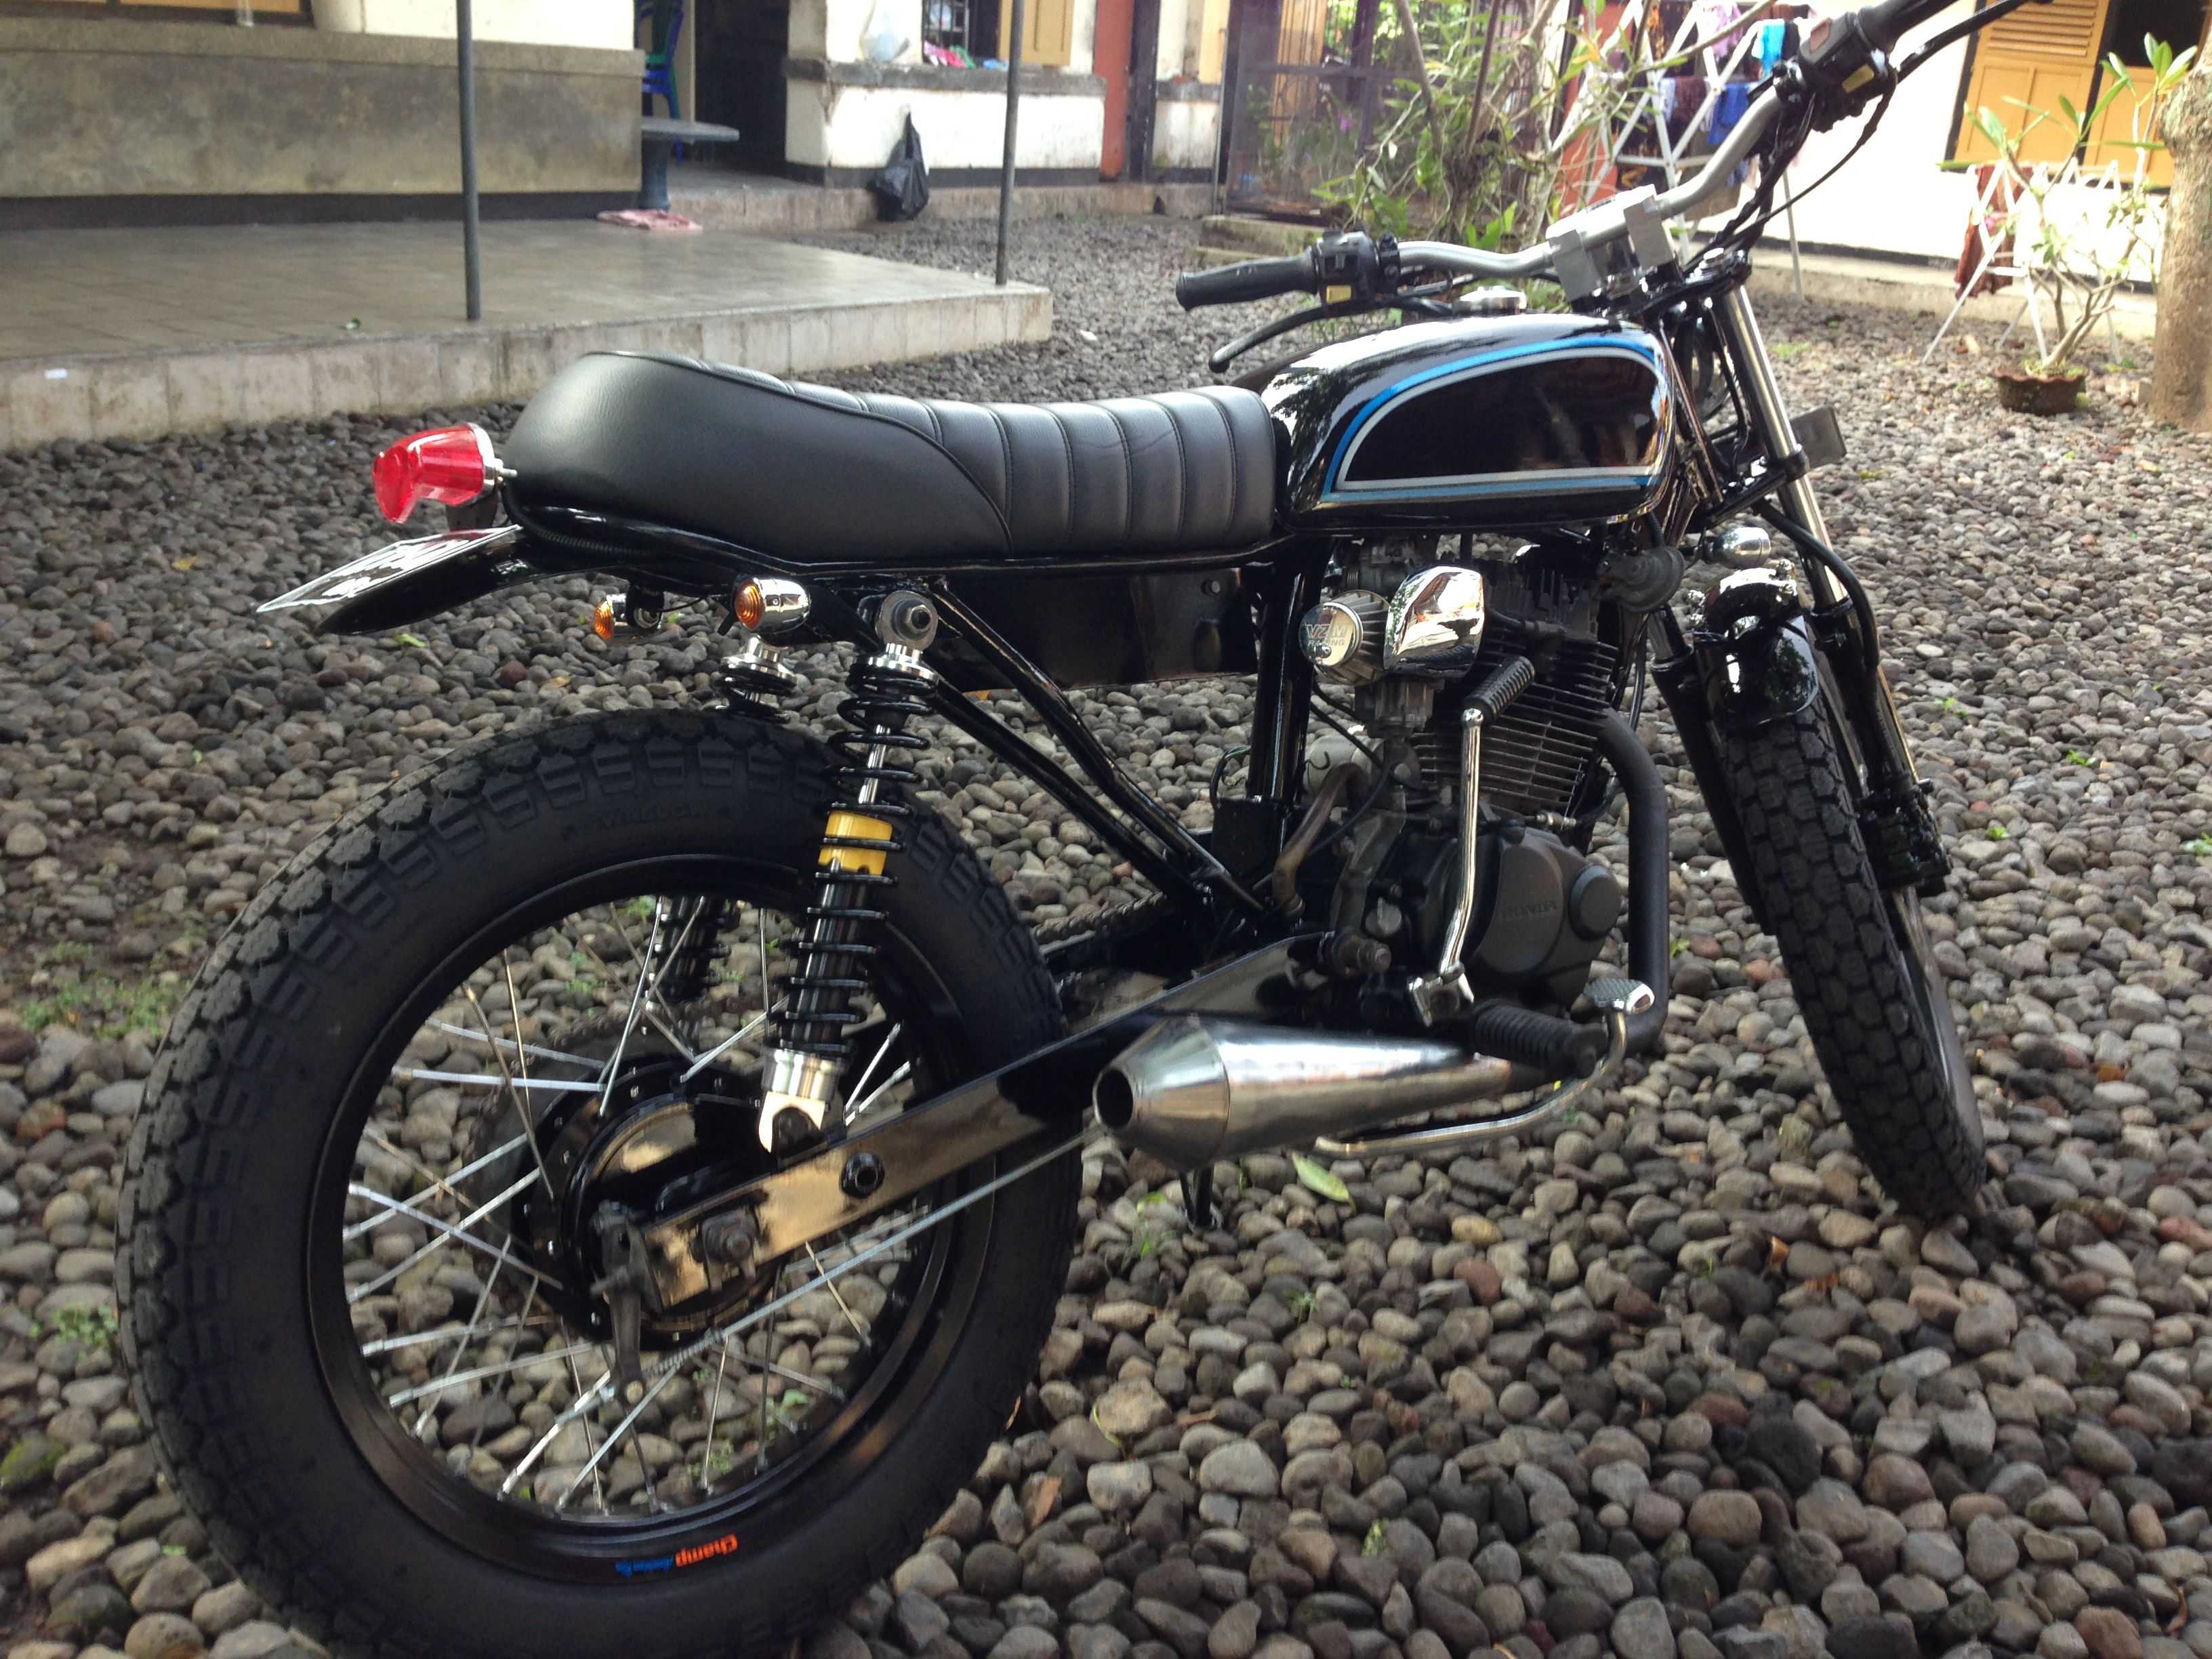 Kumpulan Modifikasi Motor Cb Jap Style Modifikasimania